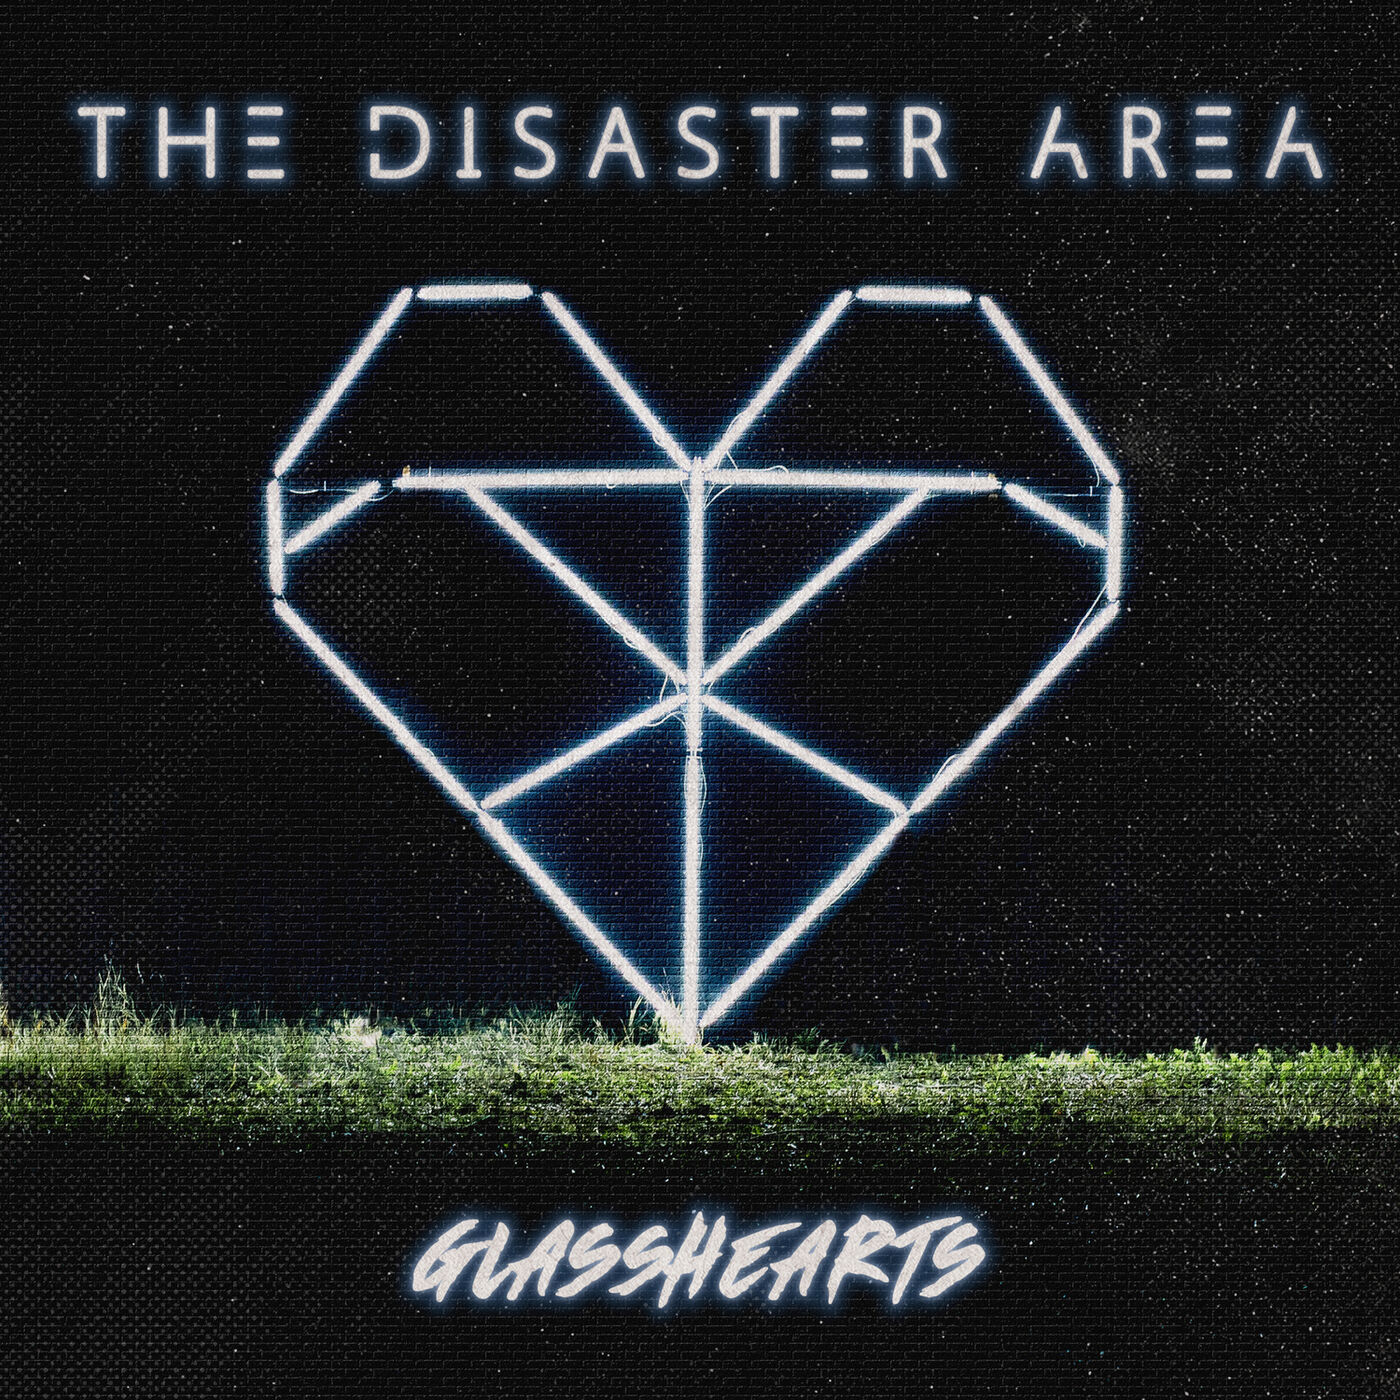 The Disaster Area - Glasshearts [single] (2019)